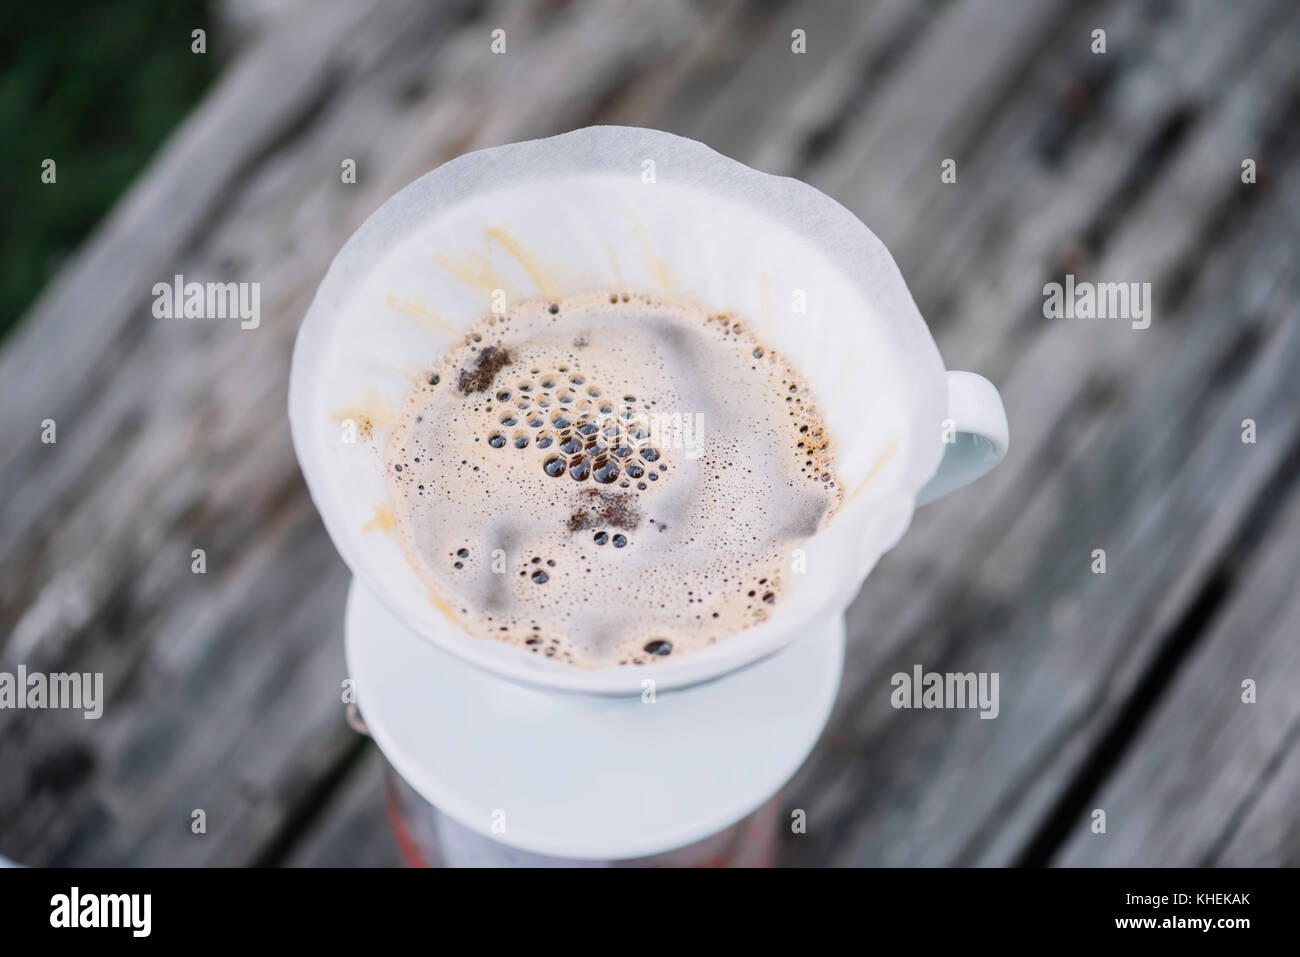 Delicious fresh morning filter coffee blooming in the dripper - Stock Image